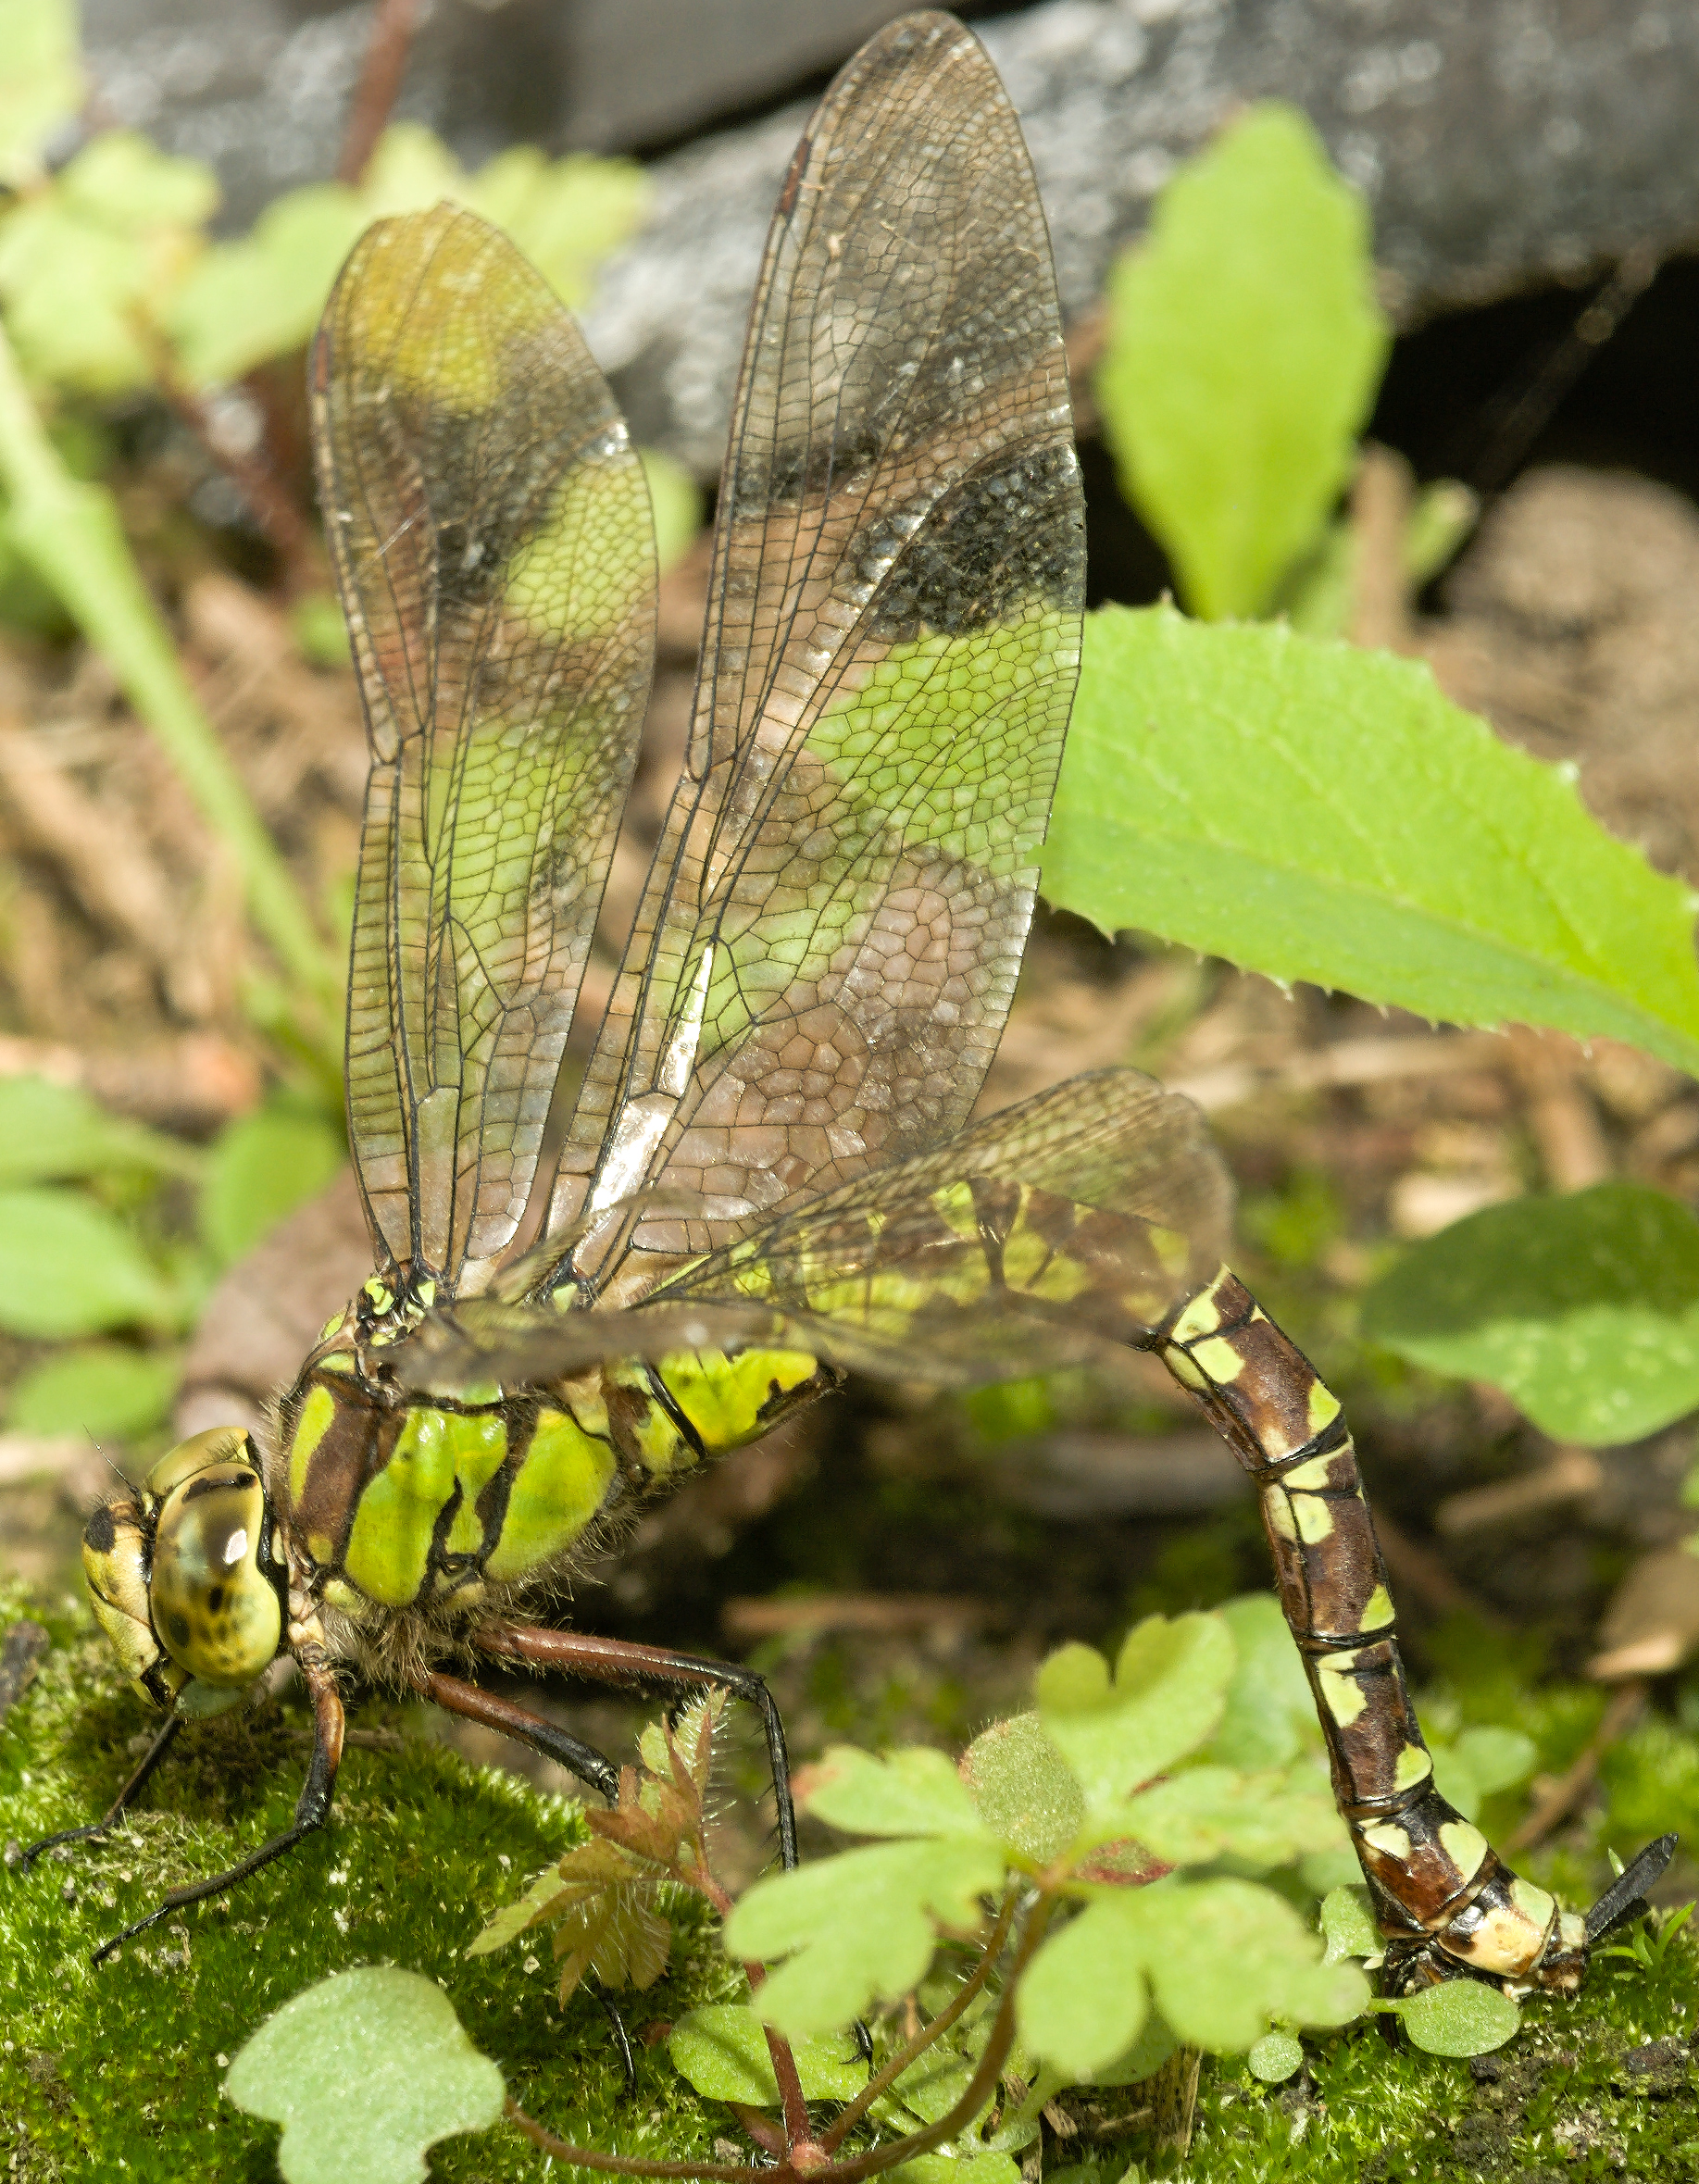 work, hereby publish it under the following license: English Southern Hawker or Blue Hawker (Aeshna Cyanea) laying eggs sex or gender: female organism